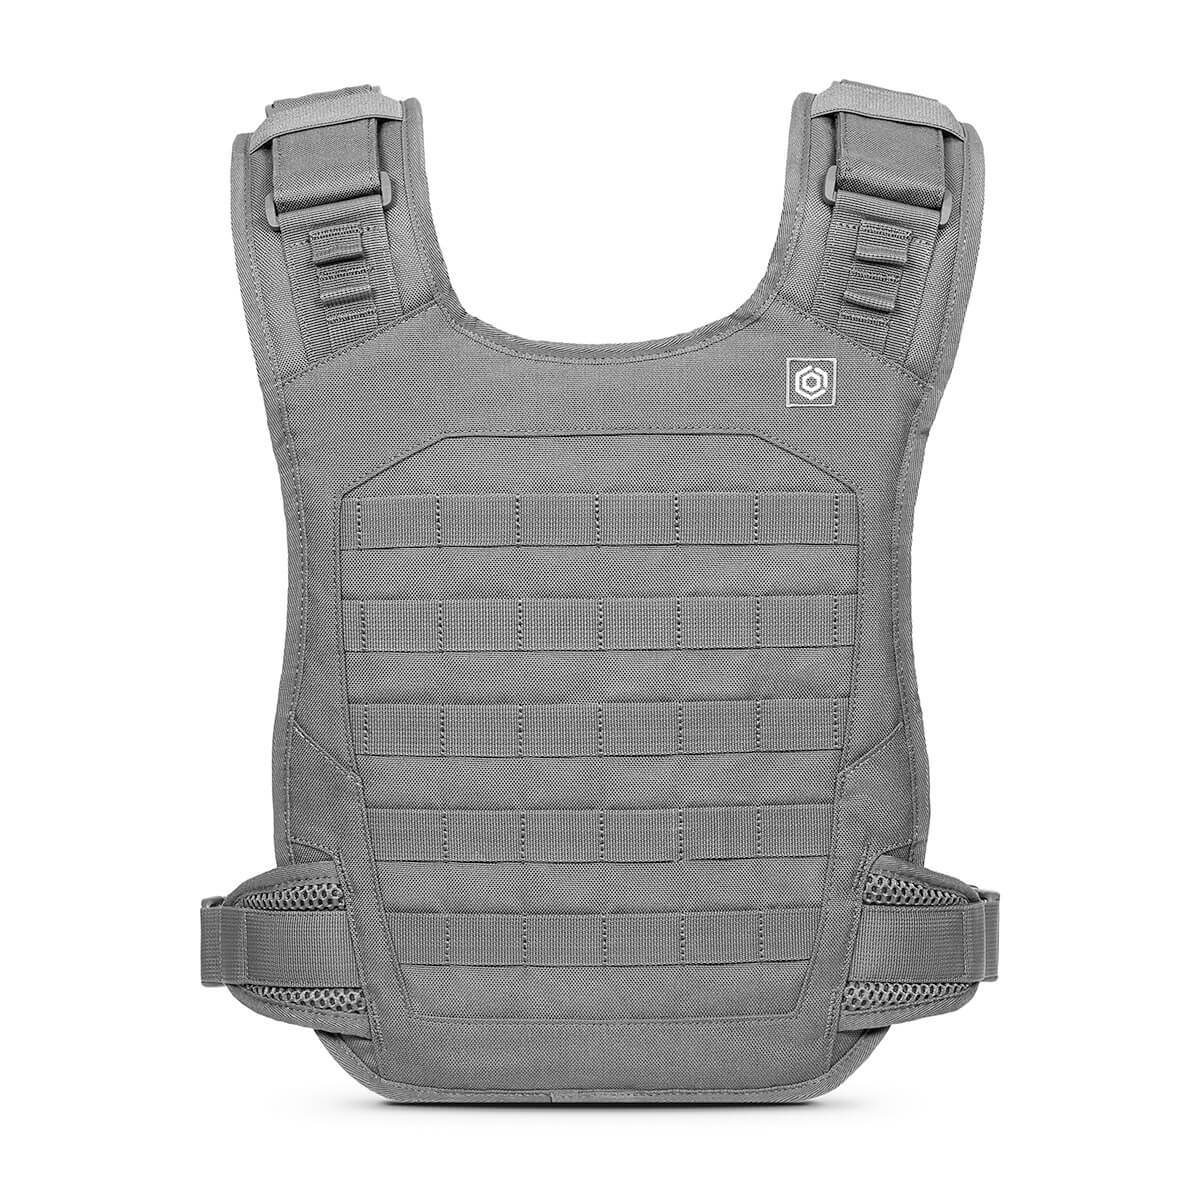 S.01 Baby Carrier Access Kit